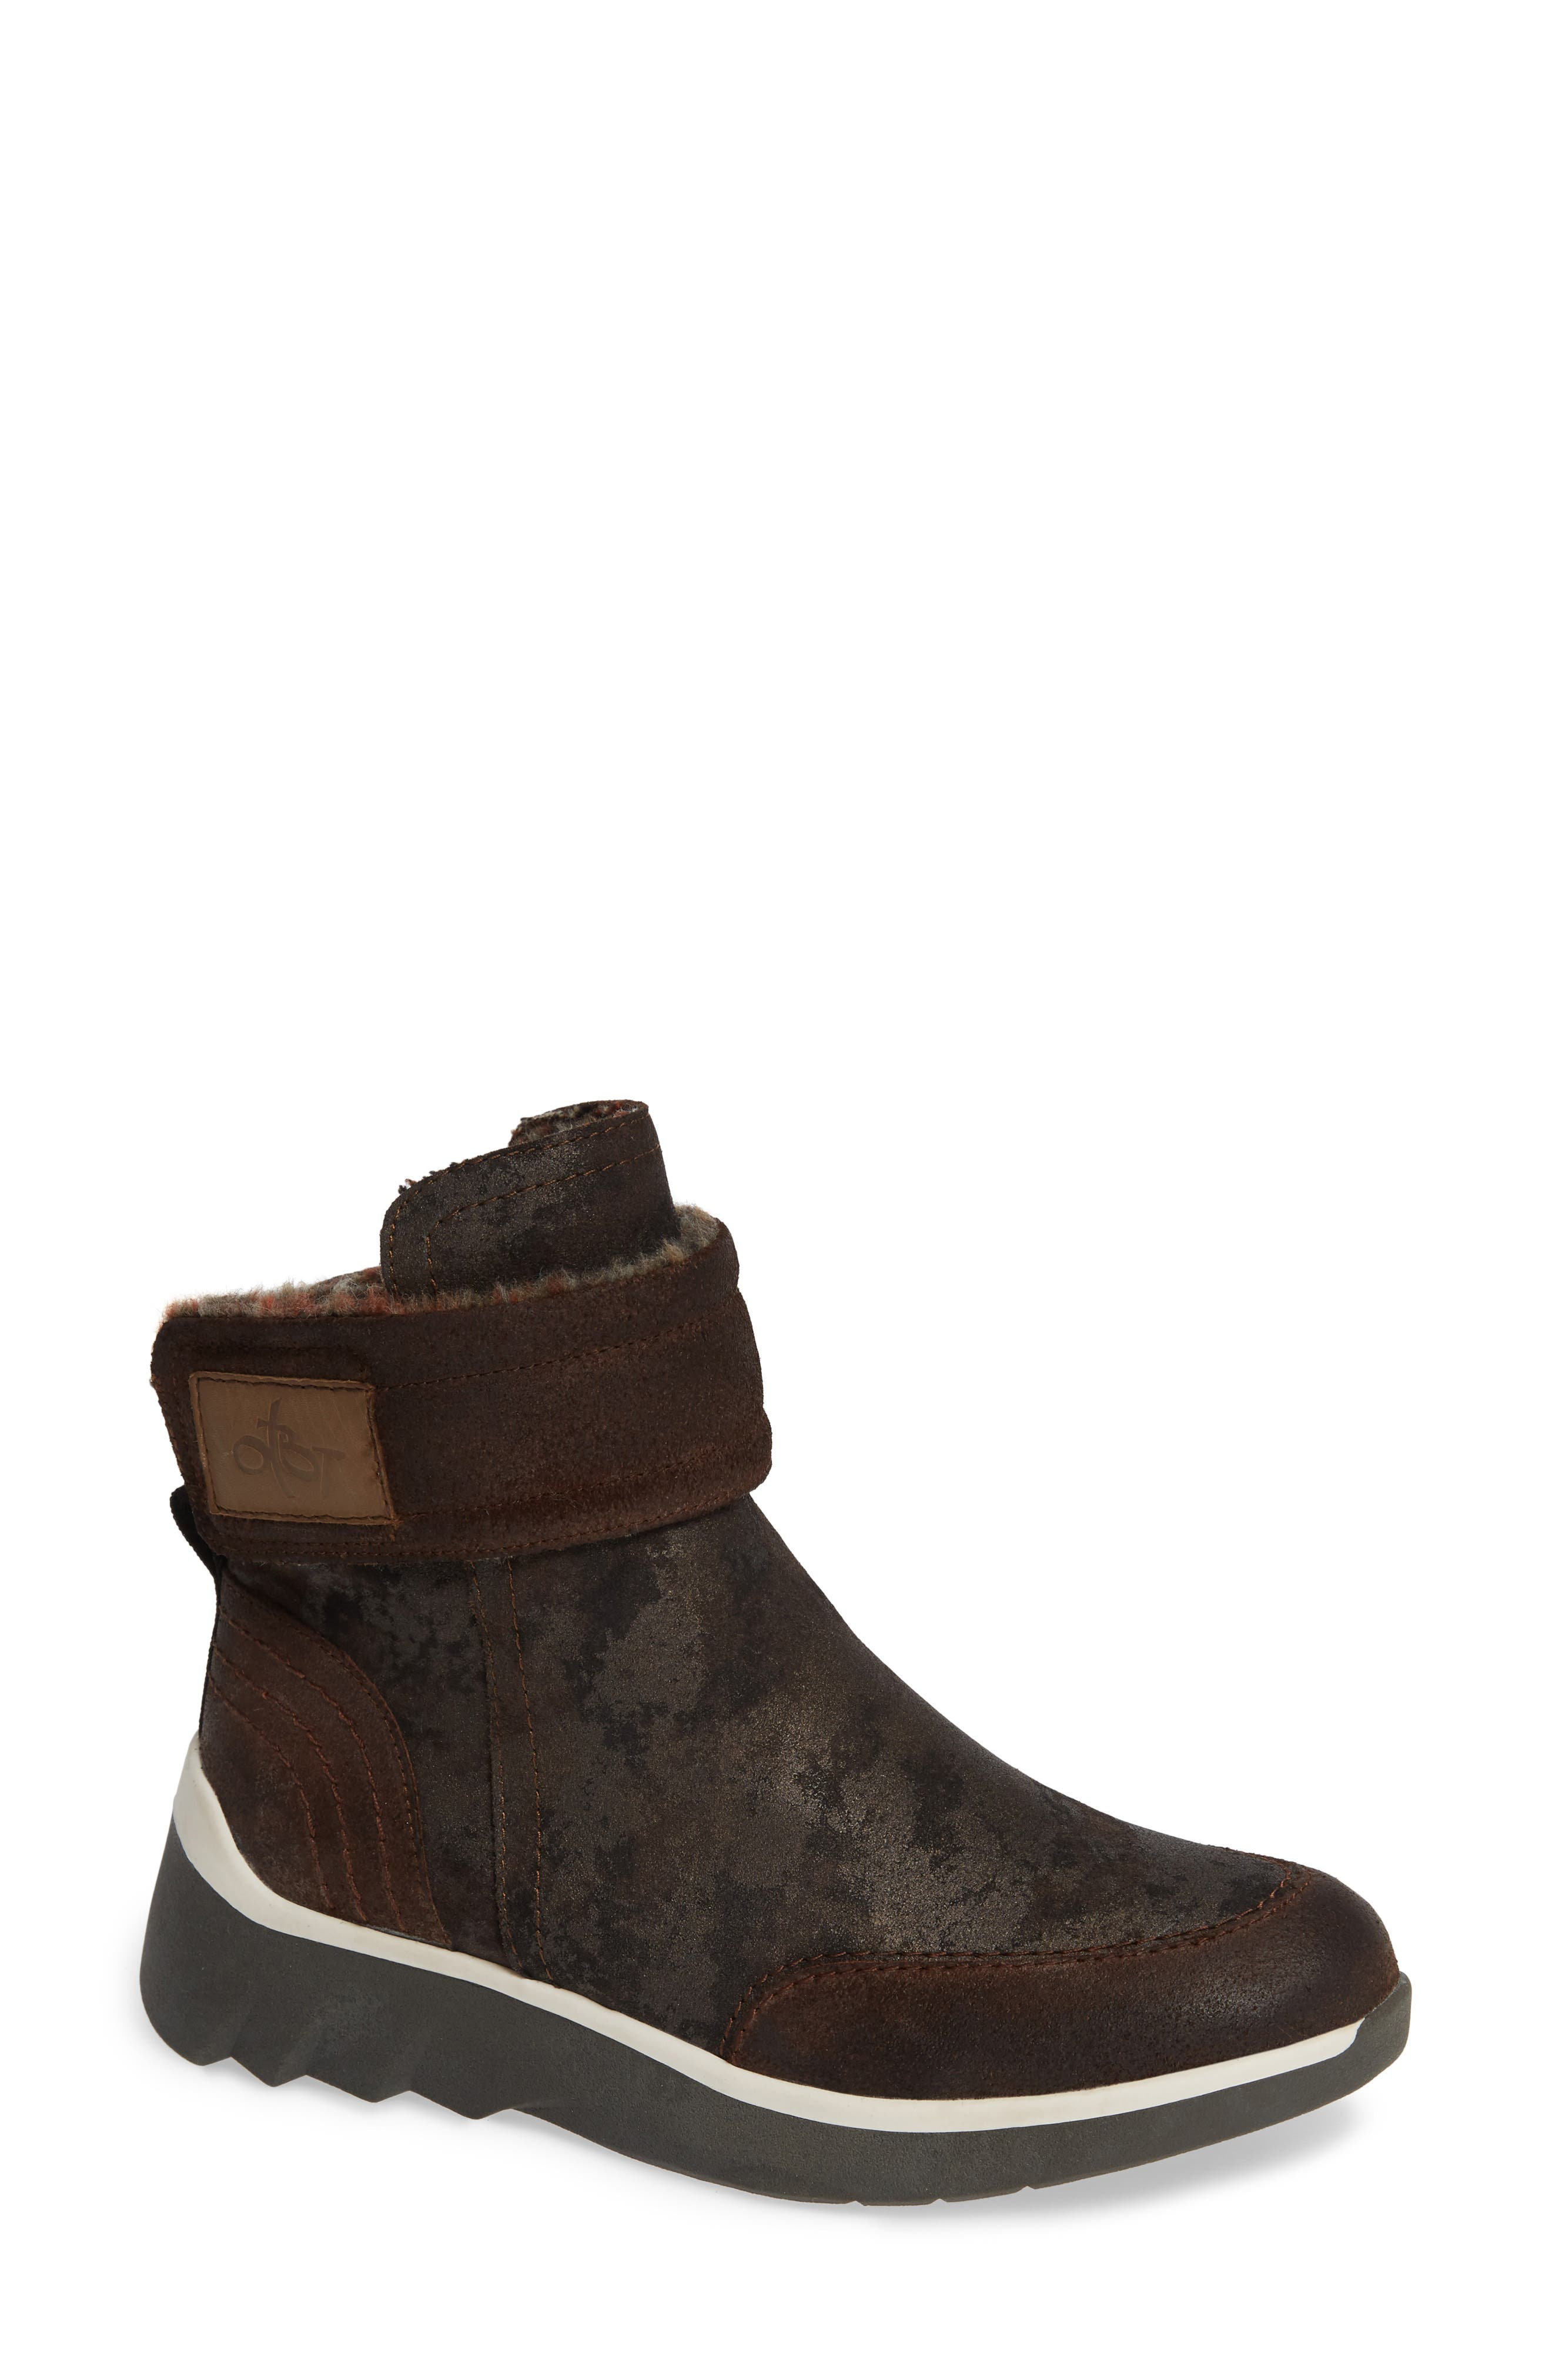 Otbt Outing Bootie, Brown